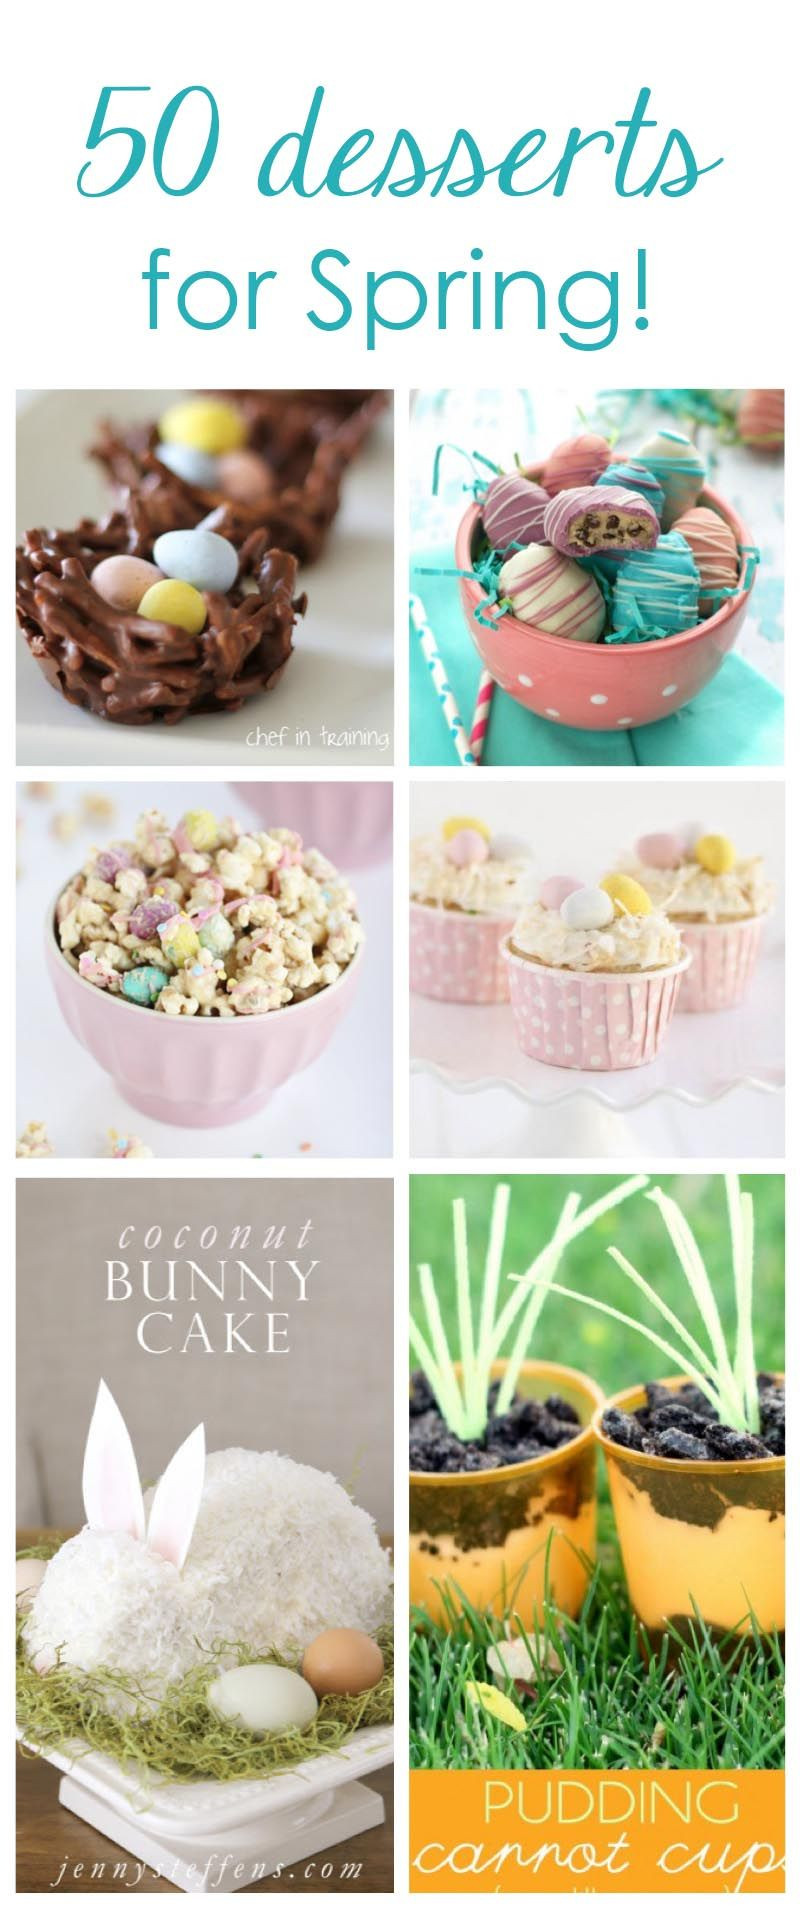 Favorite Easter Desserts  50 of the best Easter desserts featured on iheartnaptime